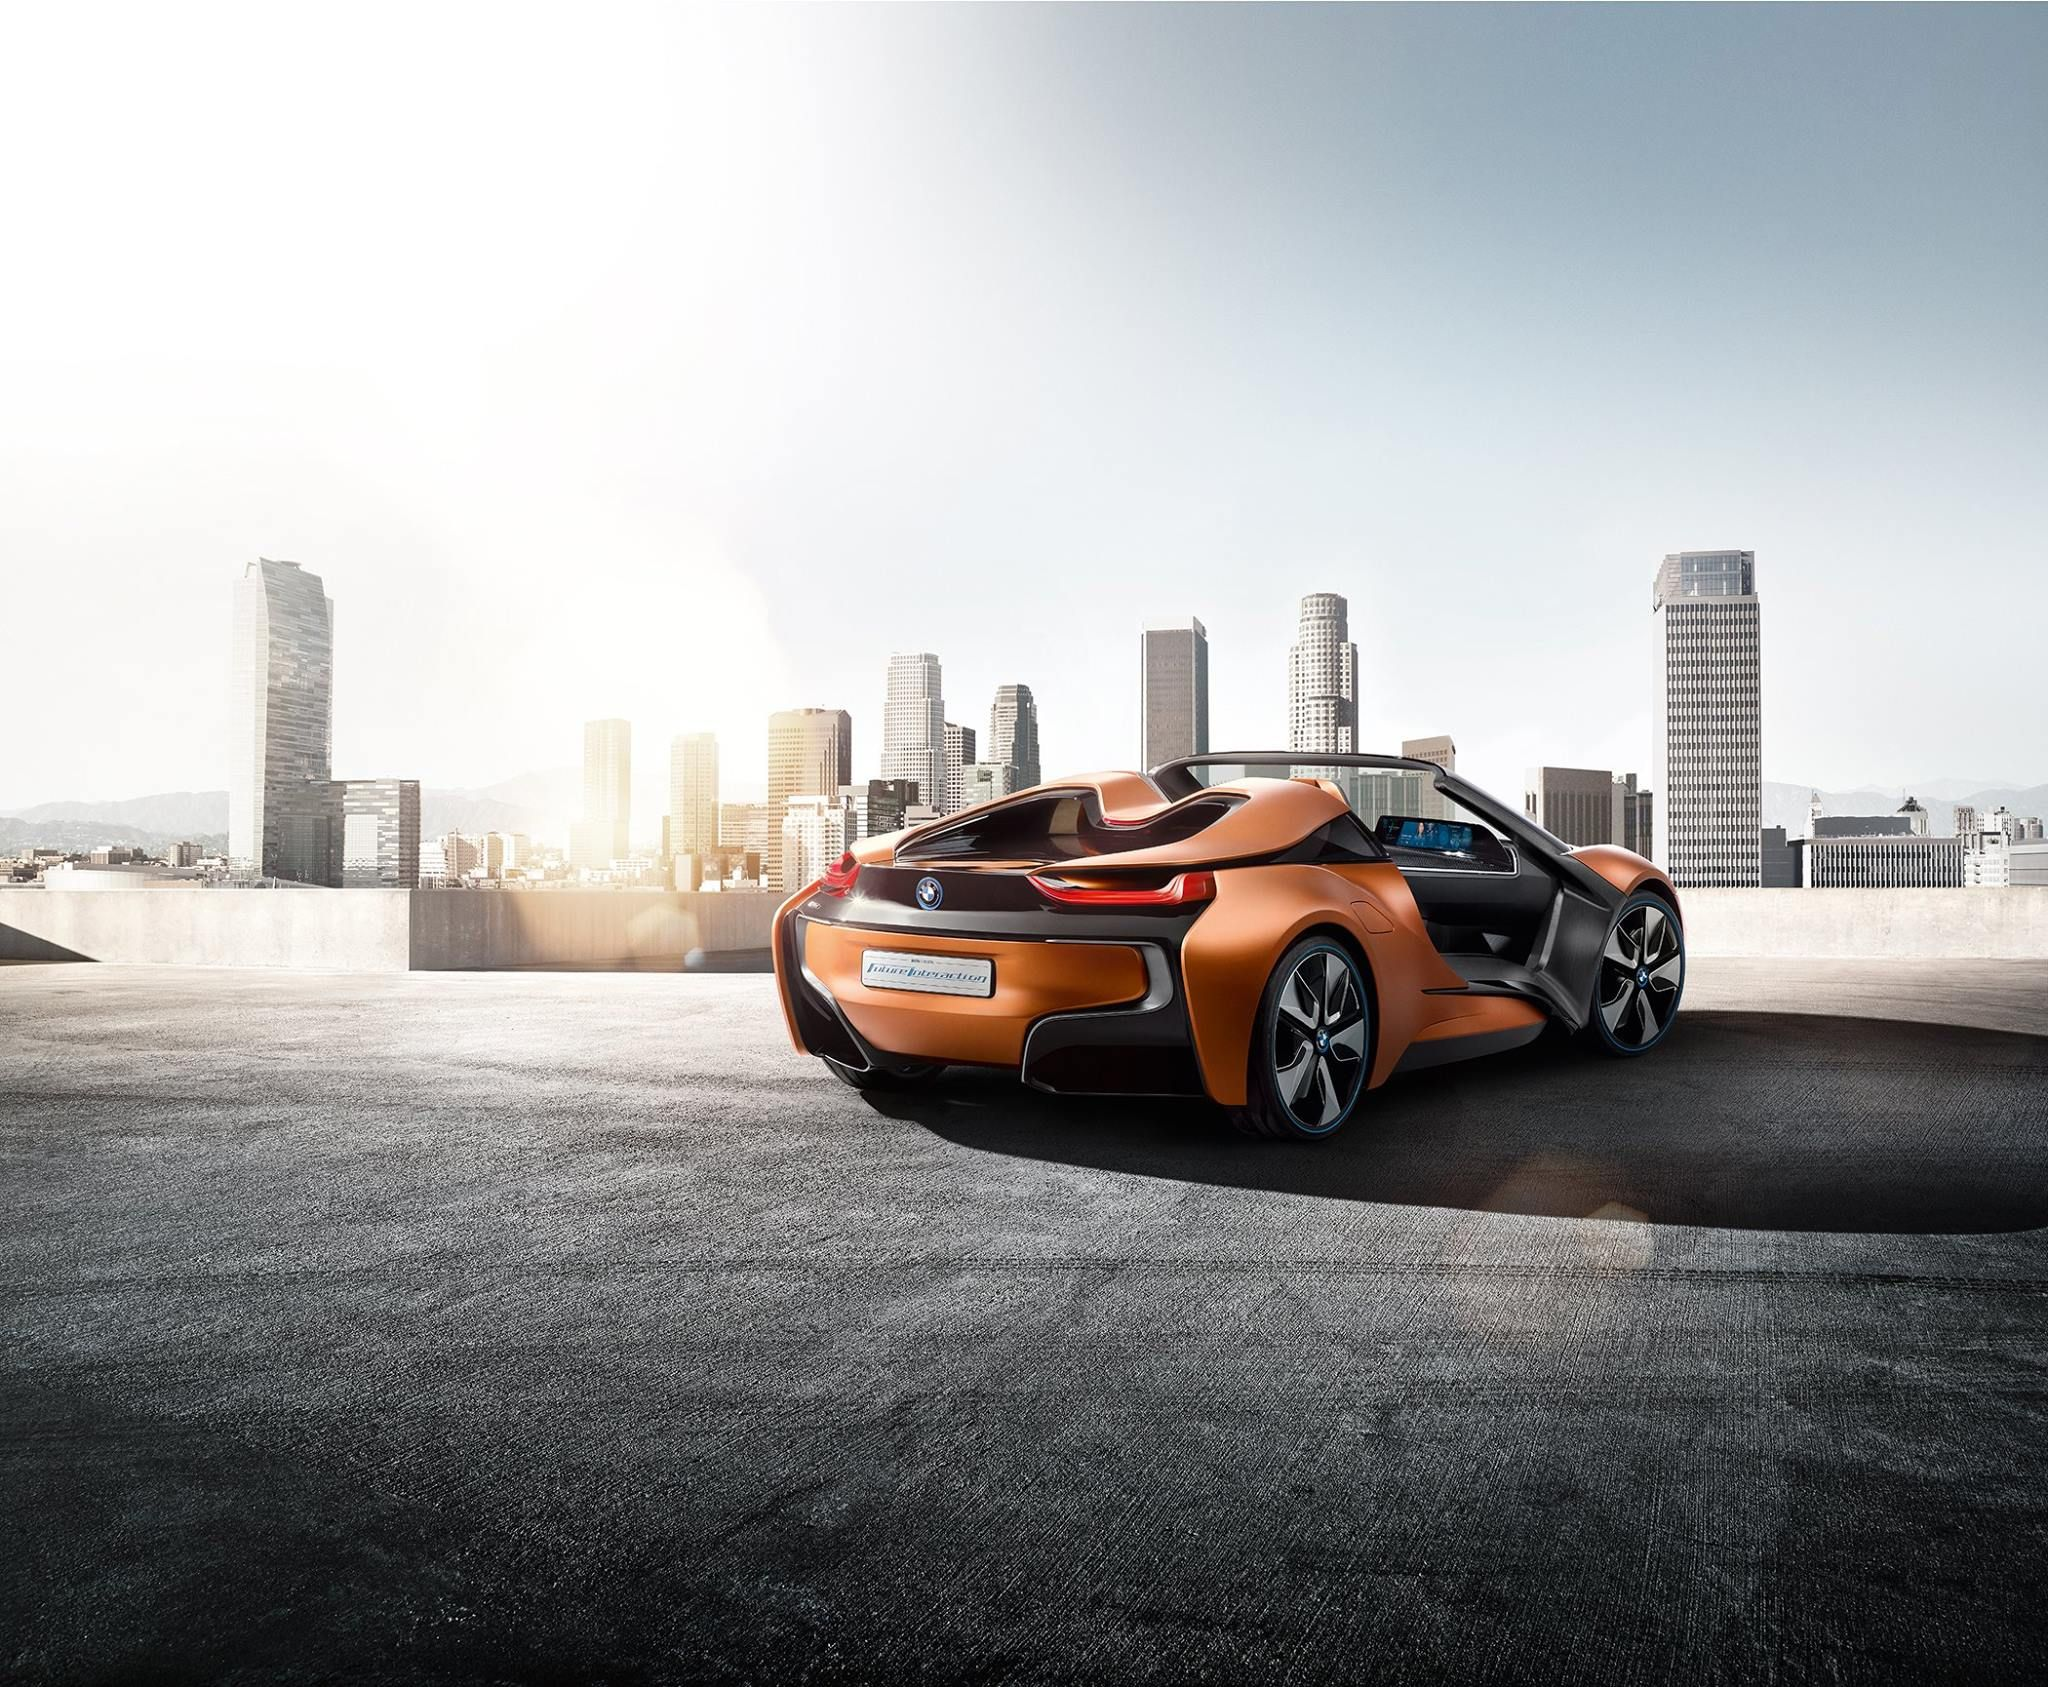 BMW i8 Vision Future Interaction